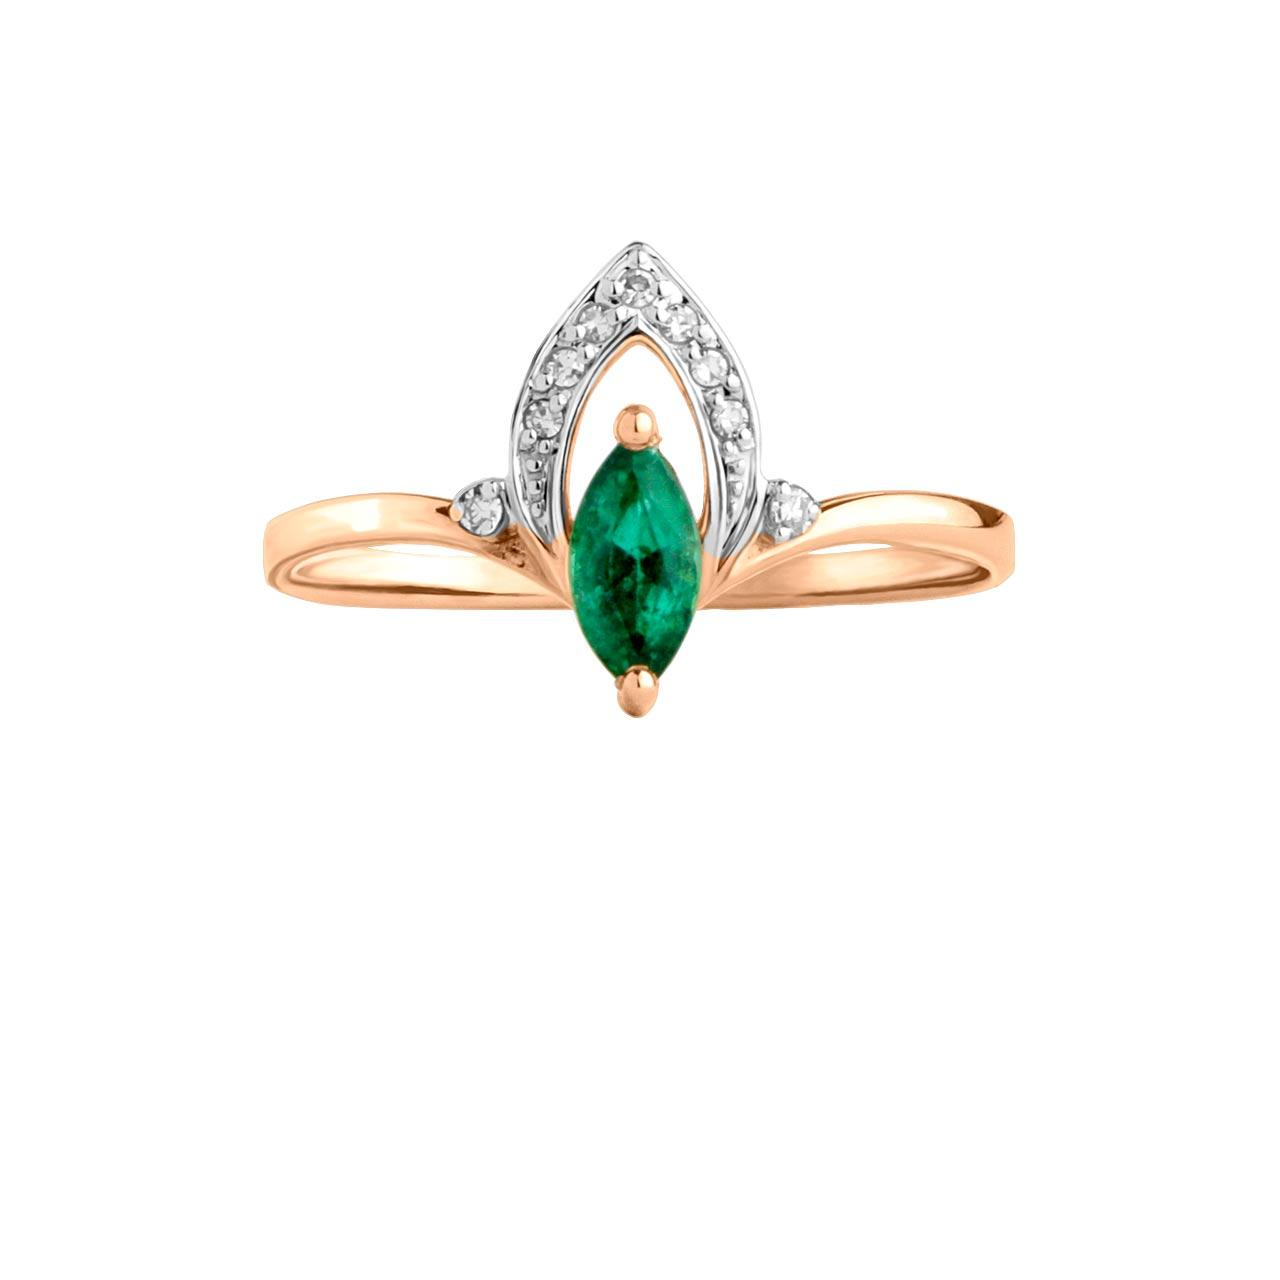 Marquise emerald ring 2